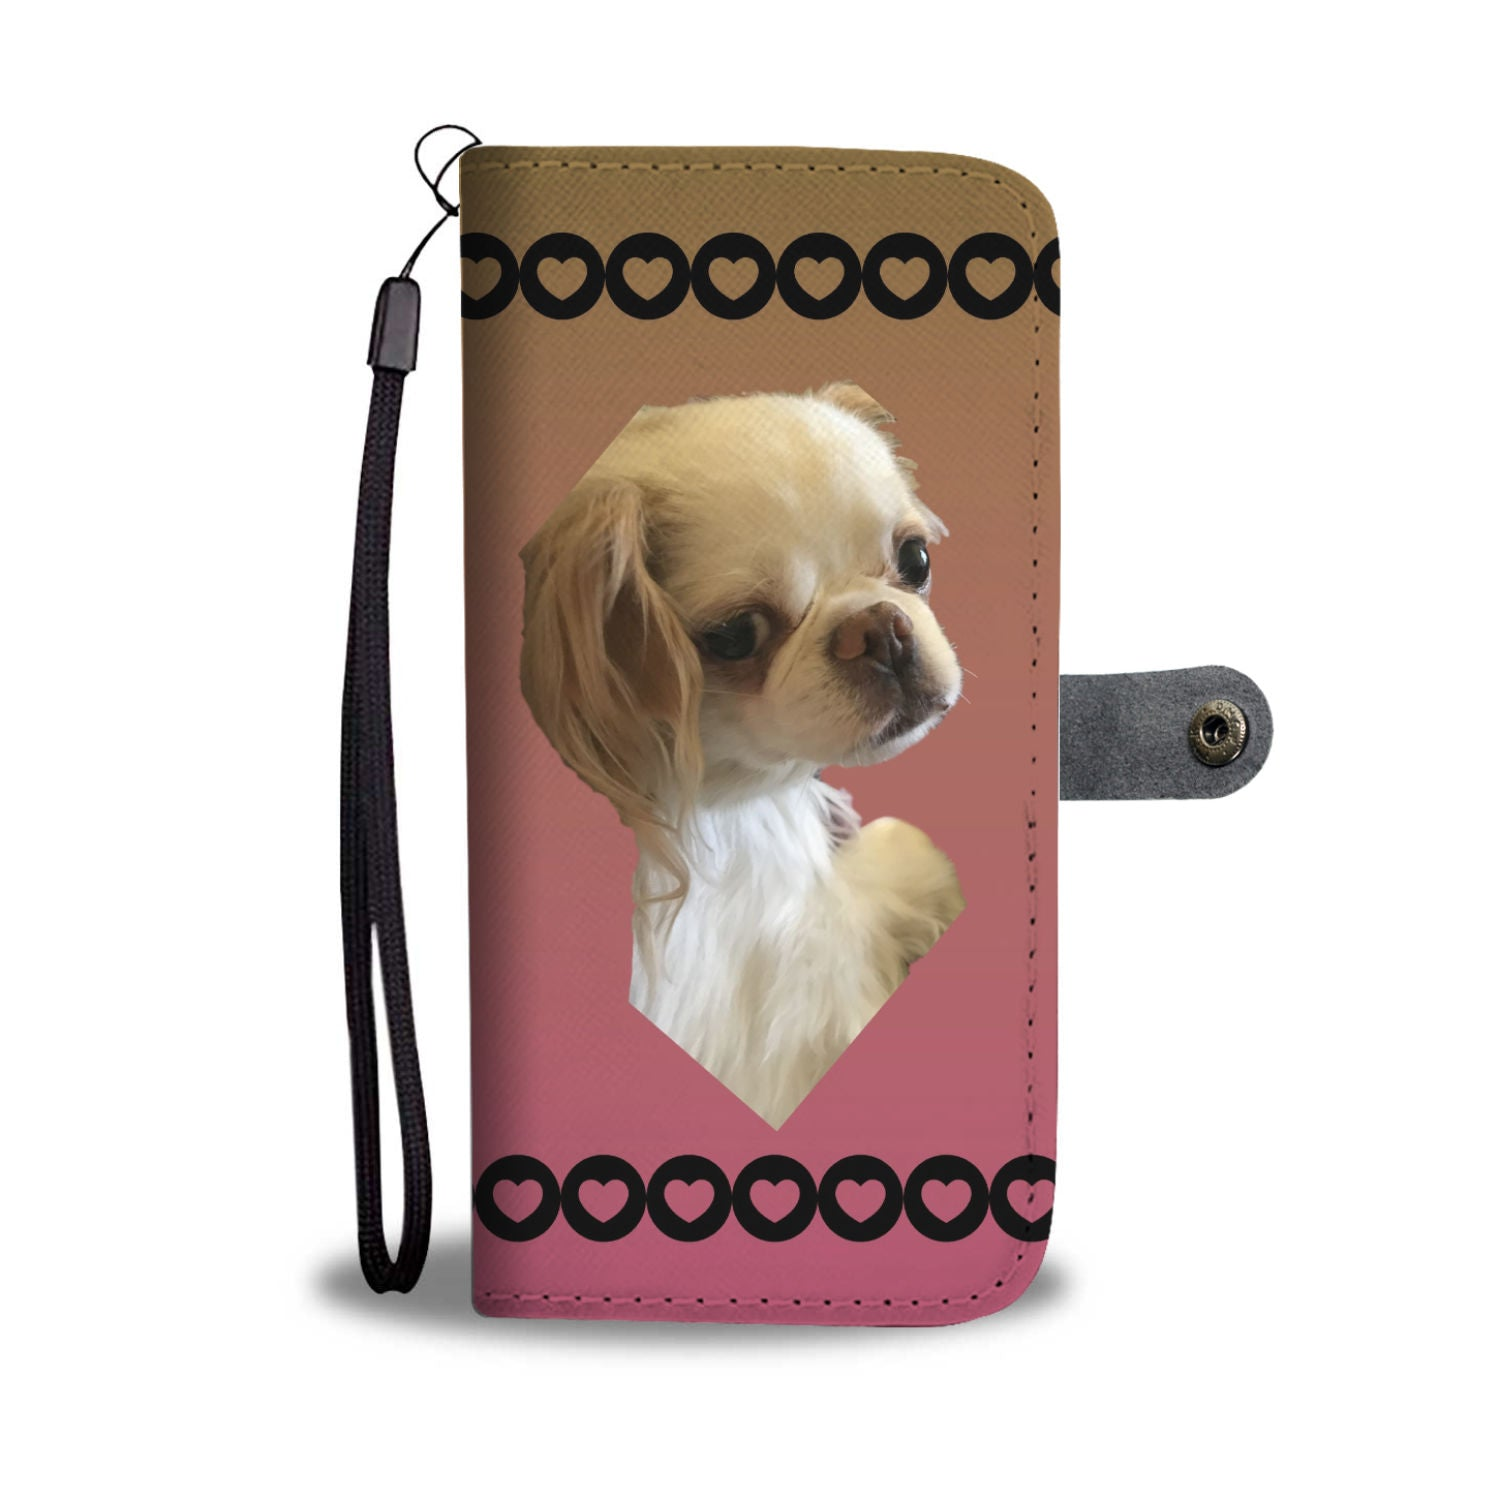 Japanese Chin Phone Case Wallet 2